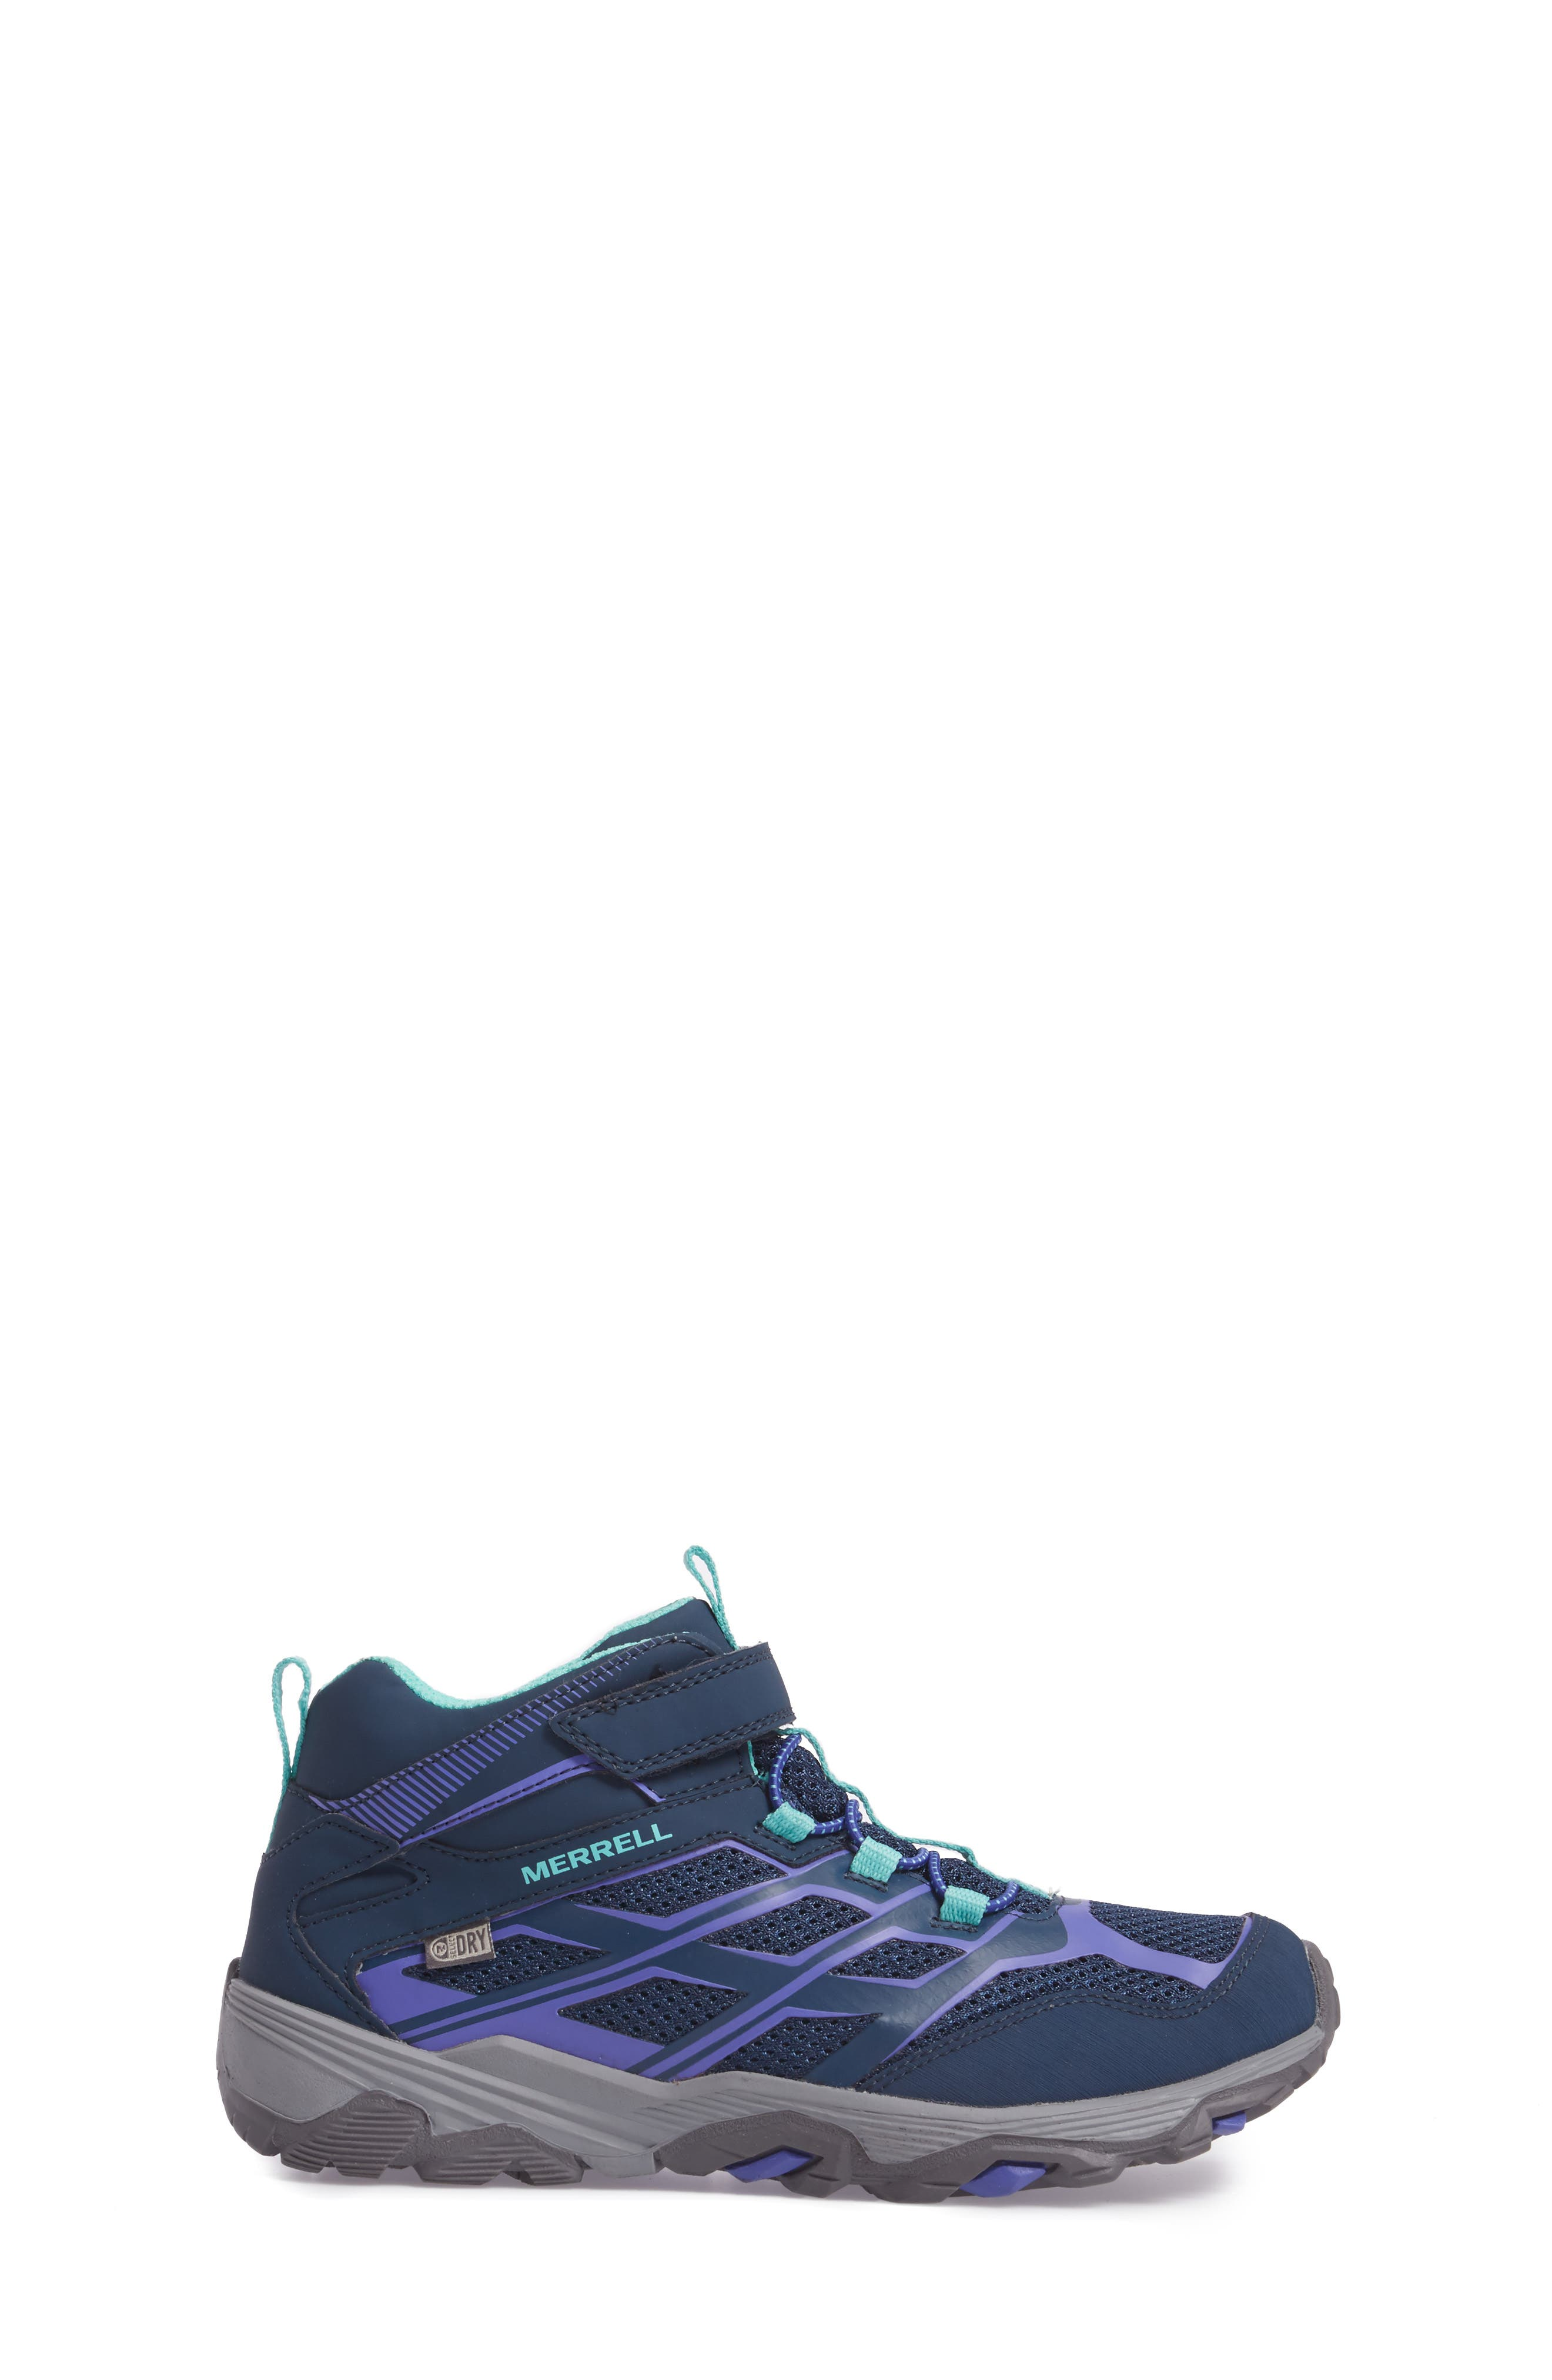 Moab FST Polar Mid Insulated Waterproof Sneaker Boot,                             Alternate thumbnail 3, color,                             410